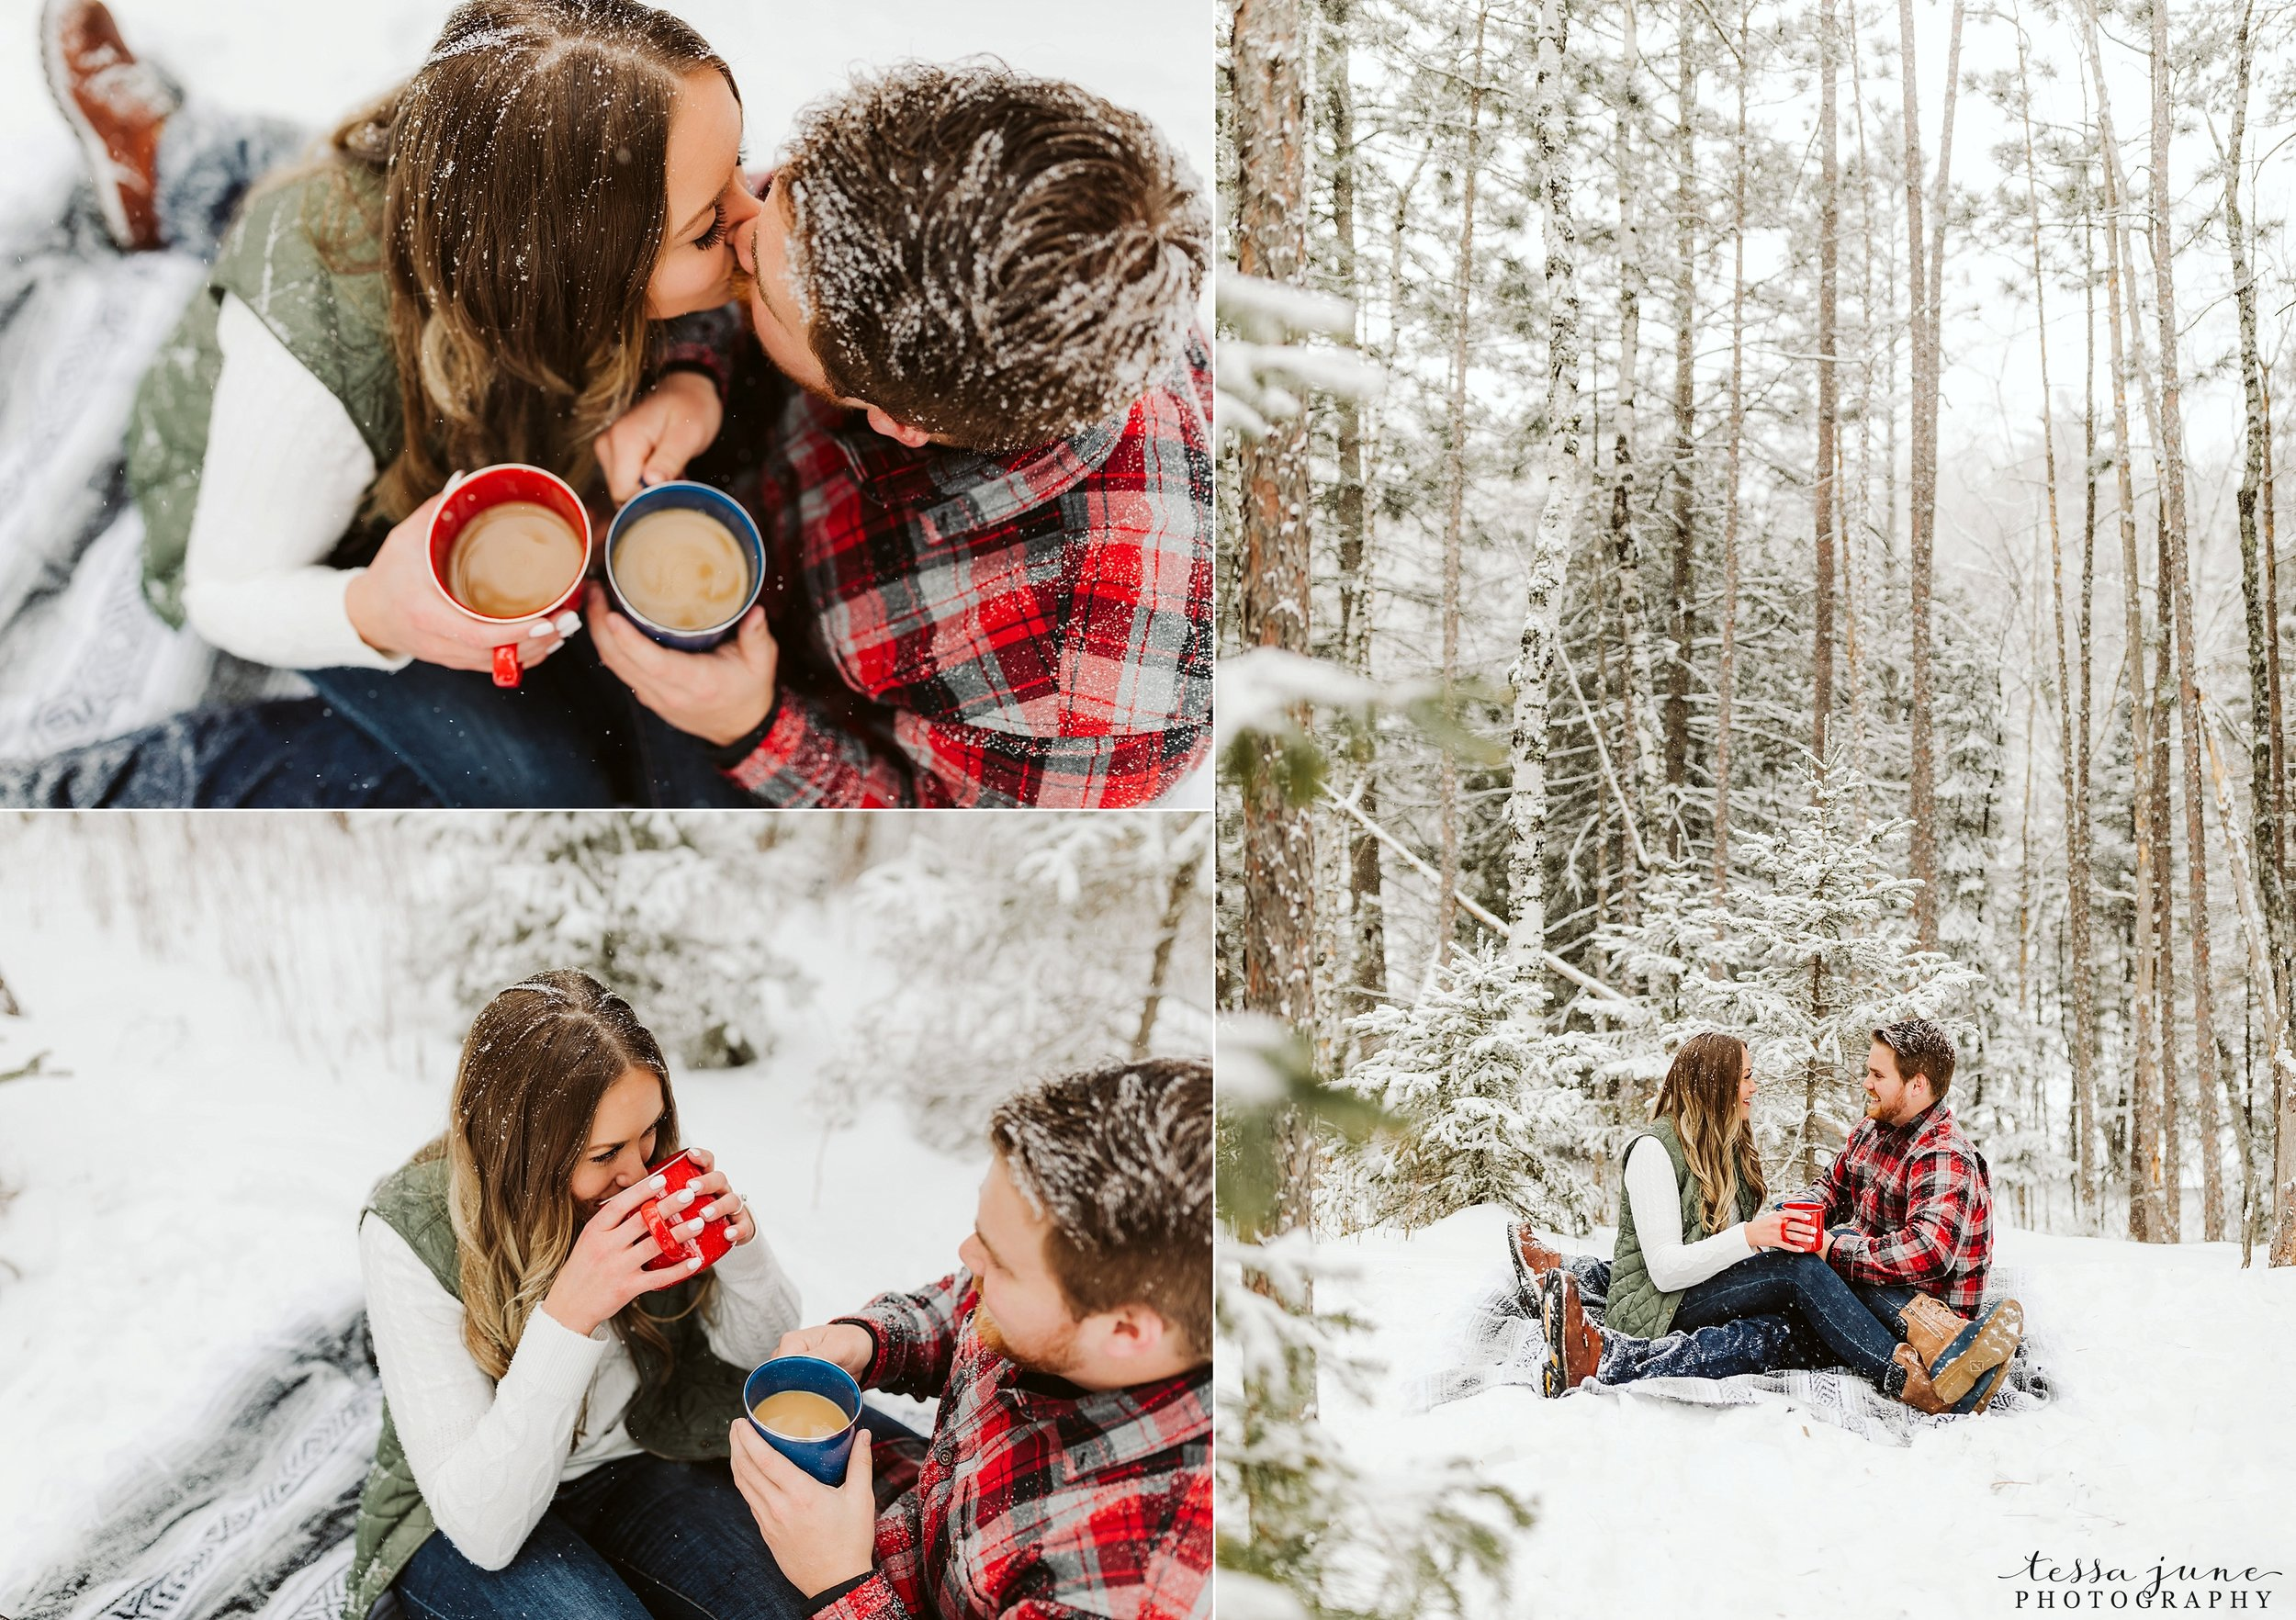 duluth-winter-engagement-forest-photos-during-snow-storm-31.jpg